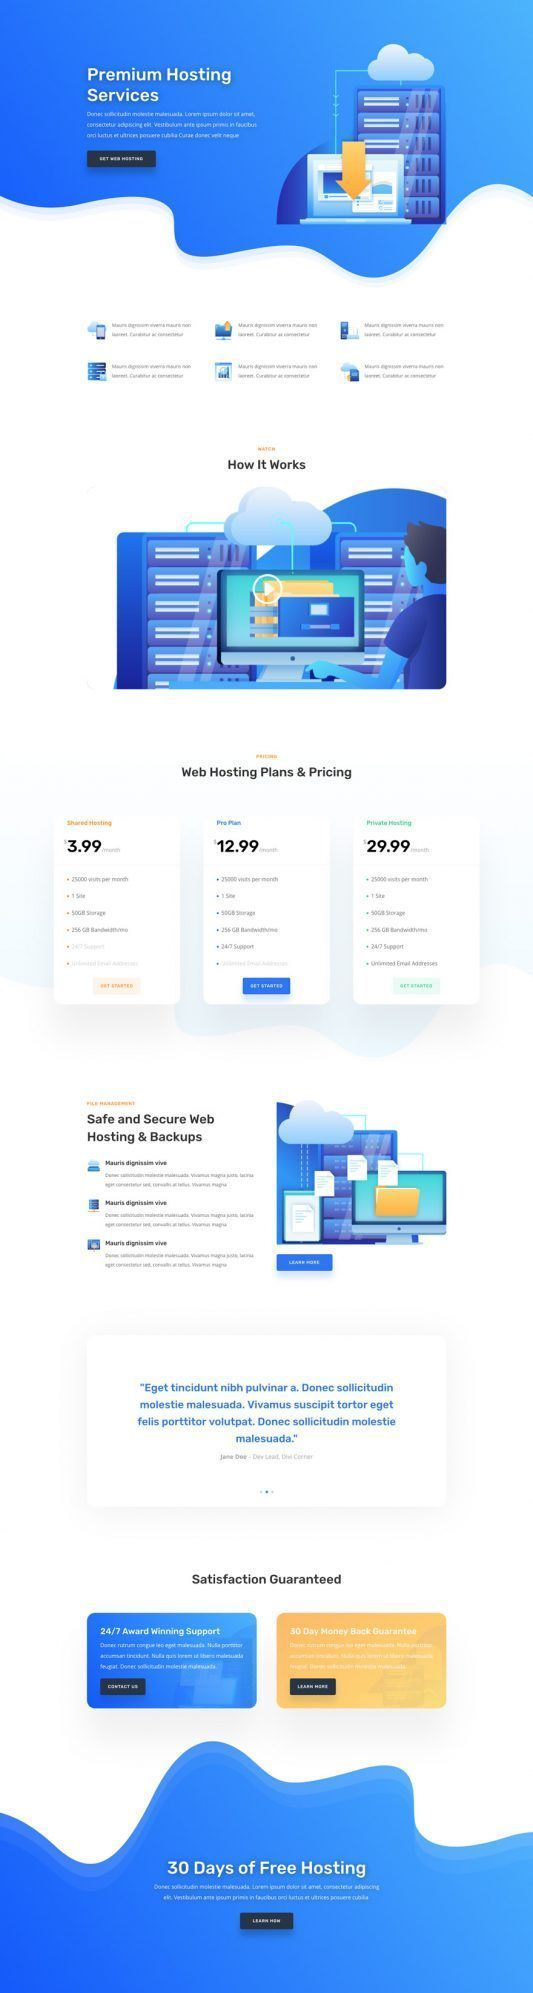 Hosting Company Modern And Trendy Website Design Home Page Fresh Looking Bright And Creative We Small Business Web Design Hosting Company Creative Web Design